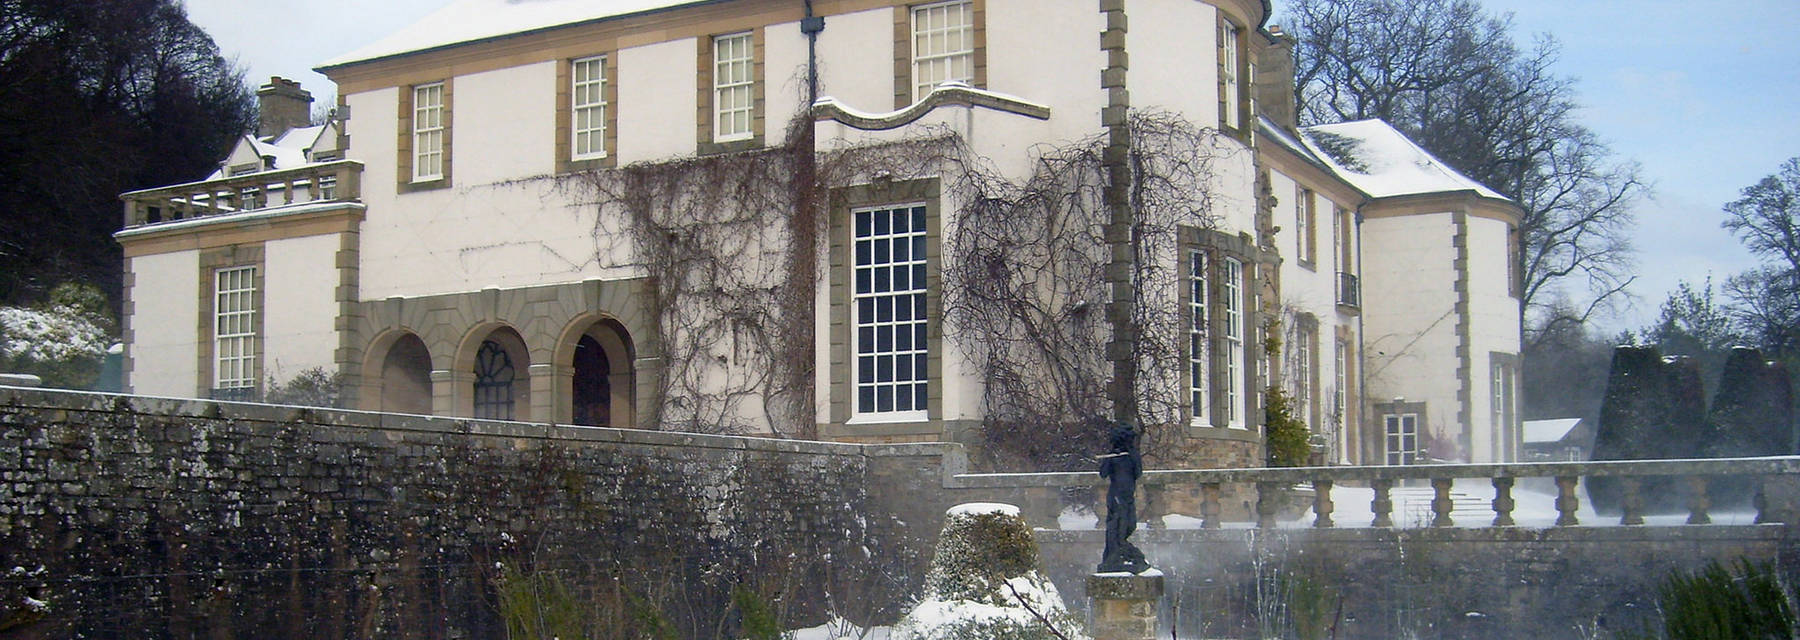 Hill of Tarvit Mansion in the snow